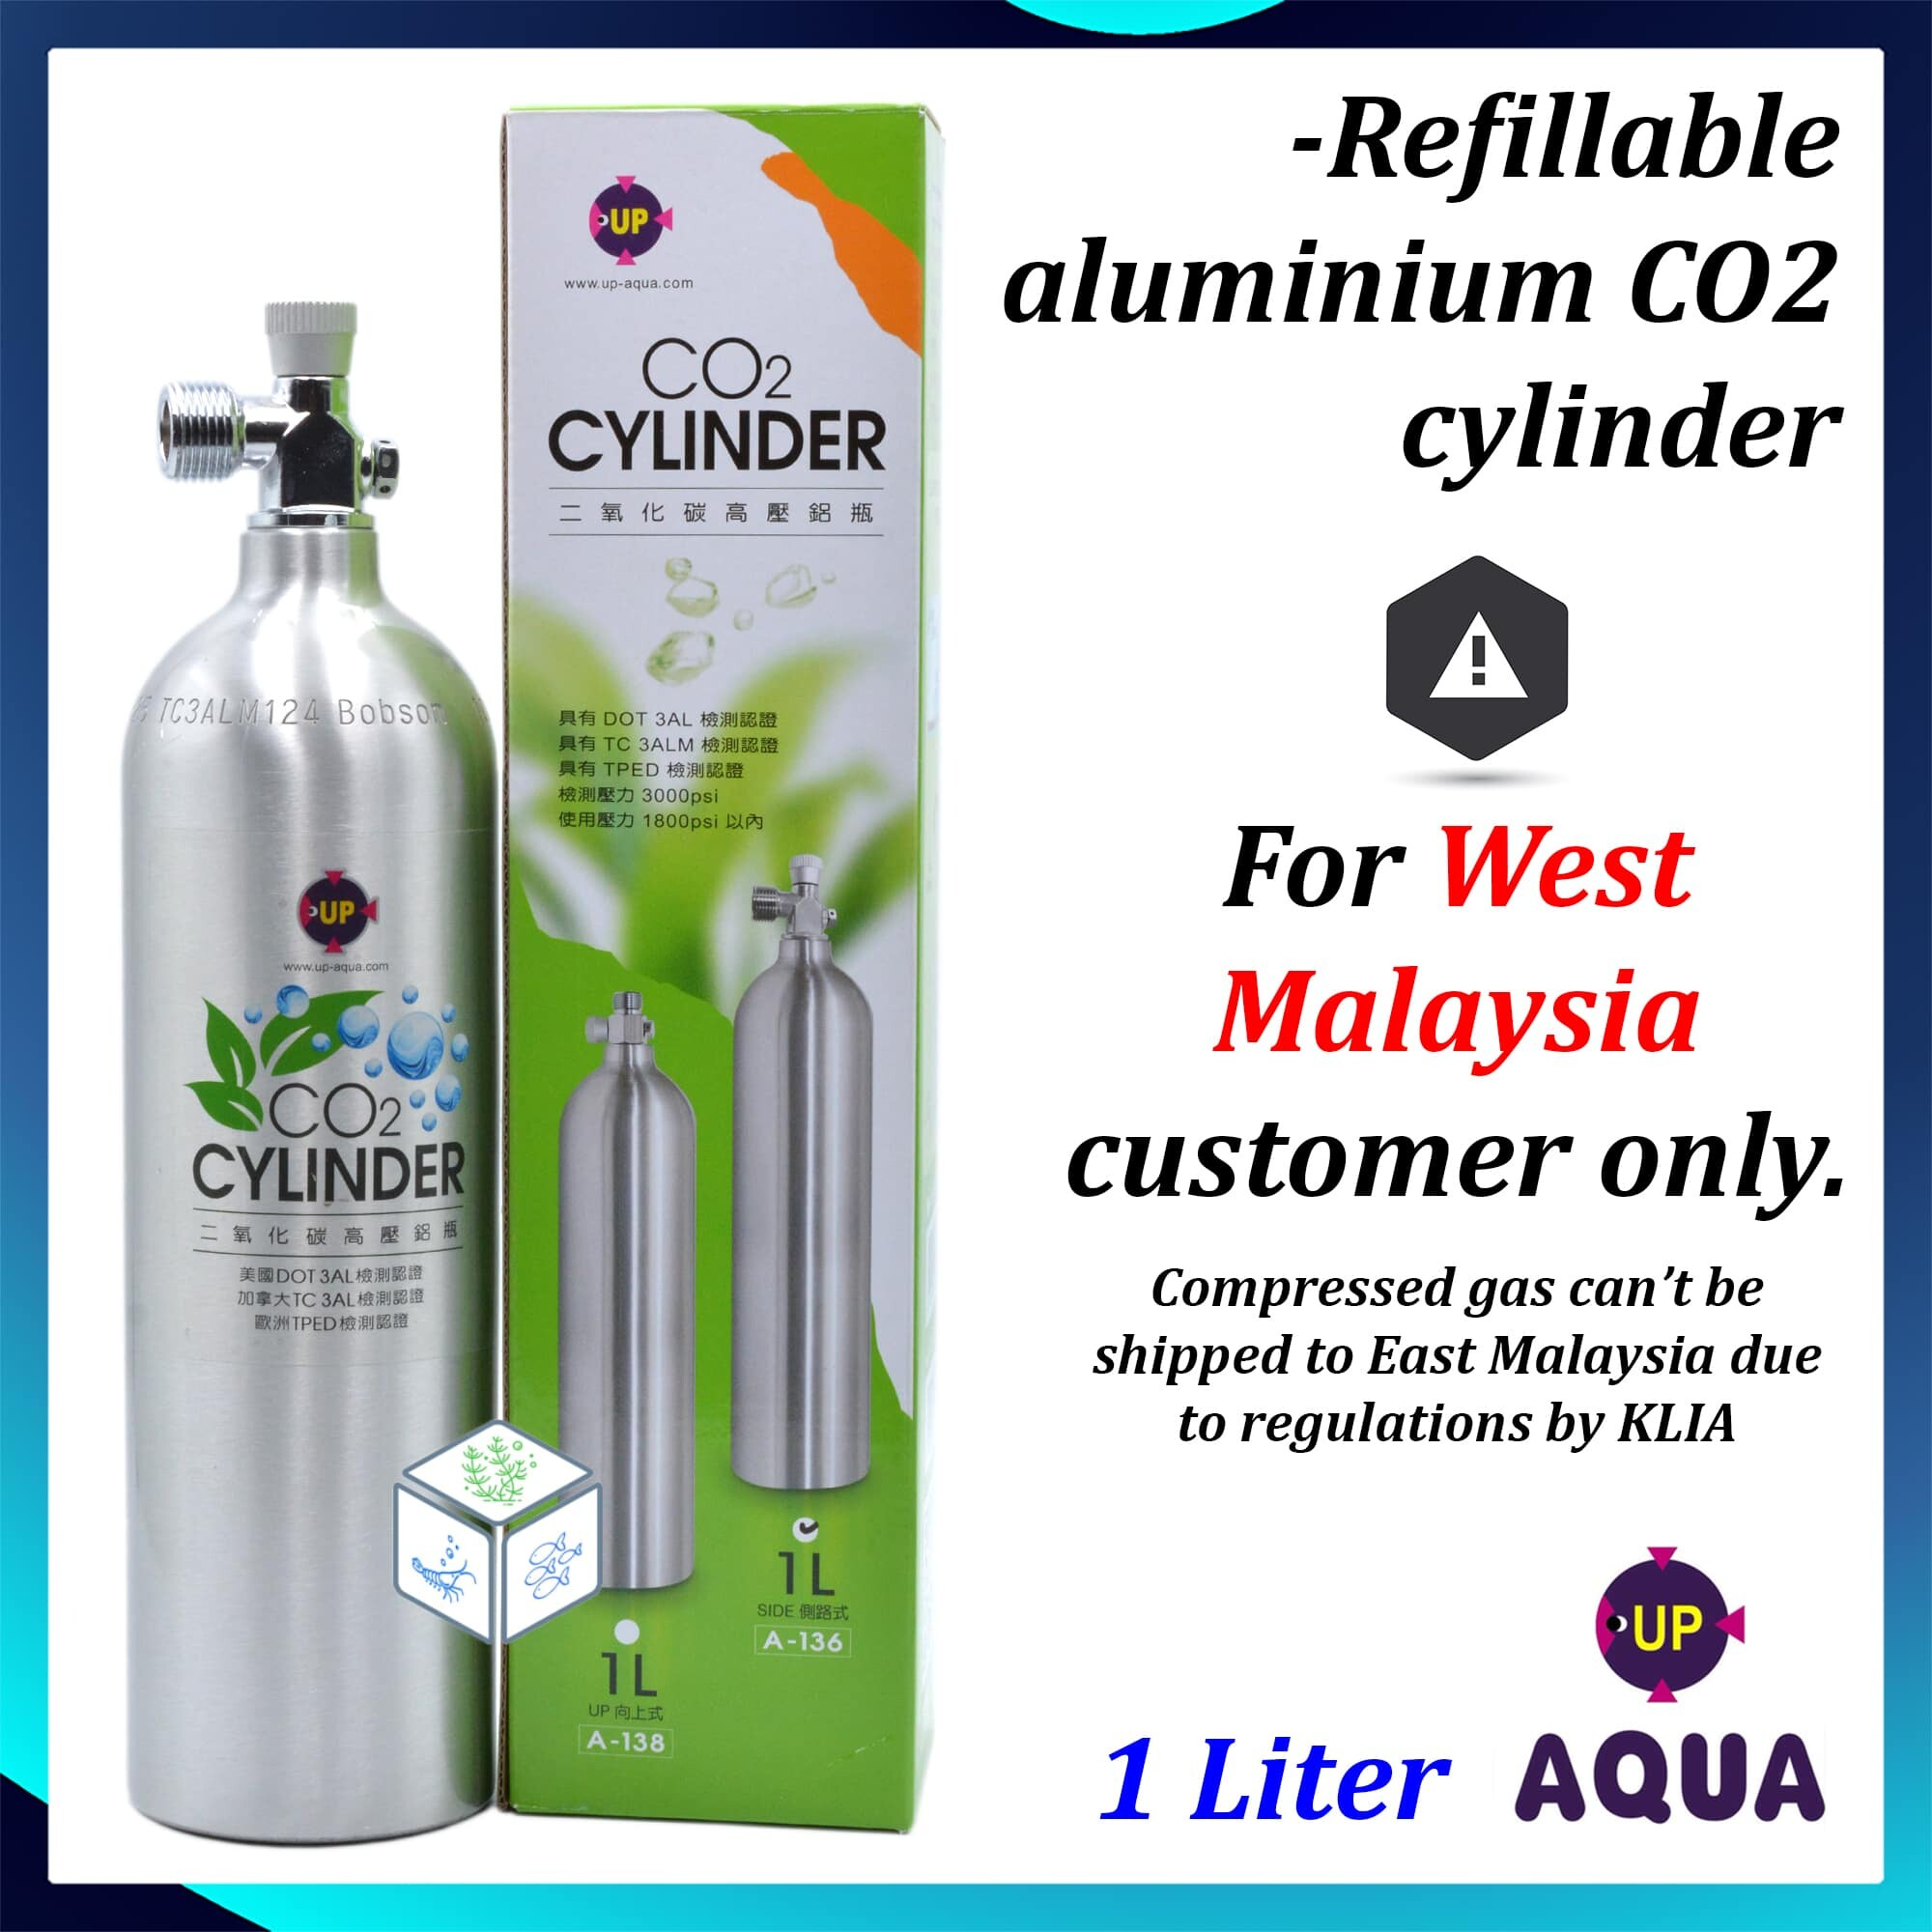 UP Aluminium CO2 cylinder 1L (Face Side)